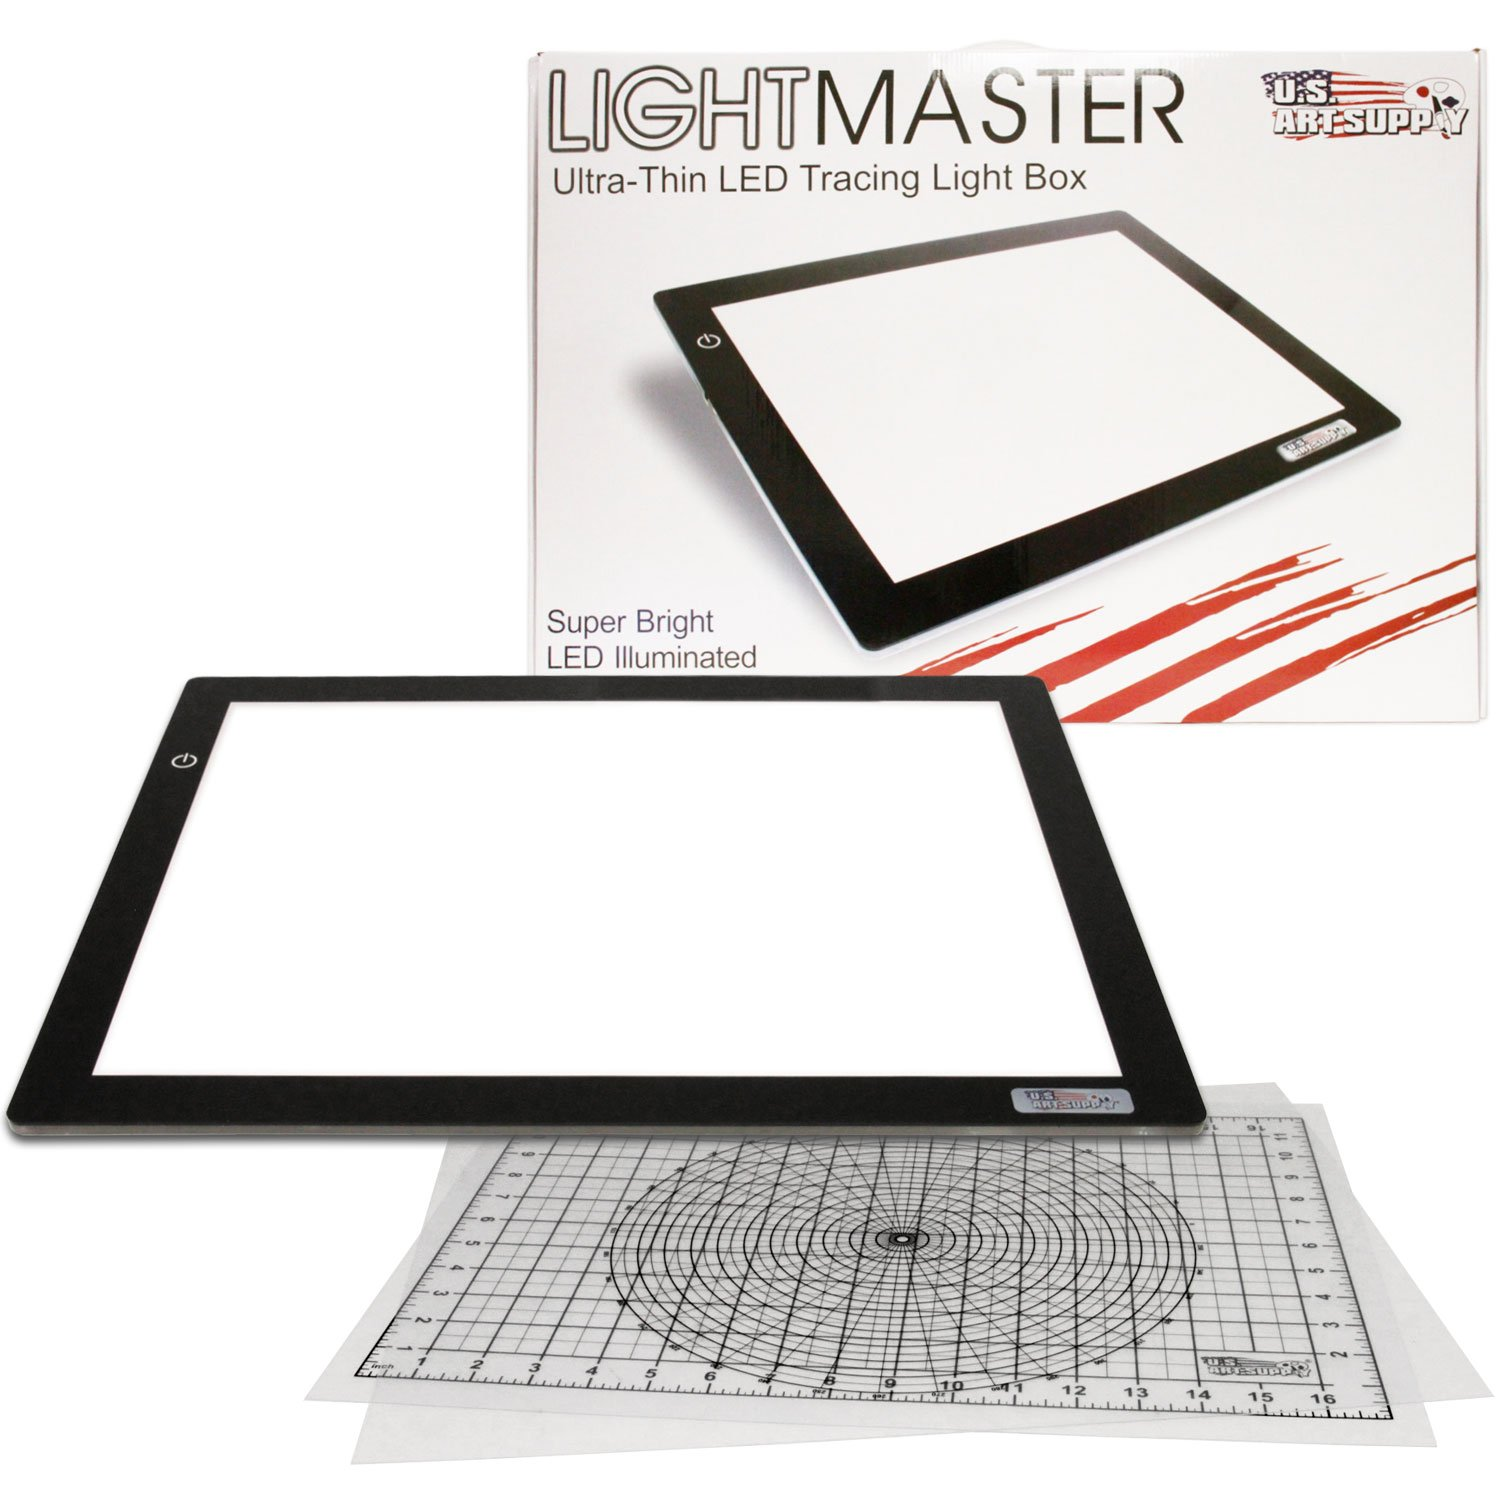 "US ART SUPPLY Lightmaster Large 24.3"" Diagonal Professional (A3) 12""x17"" LED Lightbox Board- 12-Volt Super-Bright Ultra-Thin 3/8"" Profile Light Box Pad with 110V AC Power Adapter & Dimmable LED Lamps. Now Includes for FREE: 1 Measuring Overlay Grid & 1 Circle Template/Protractor 1-Year Warranty"